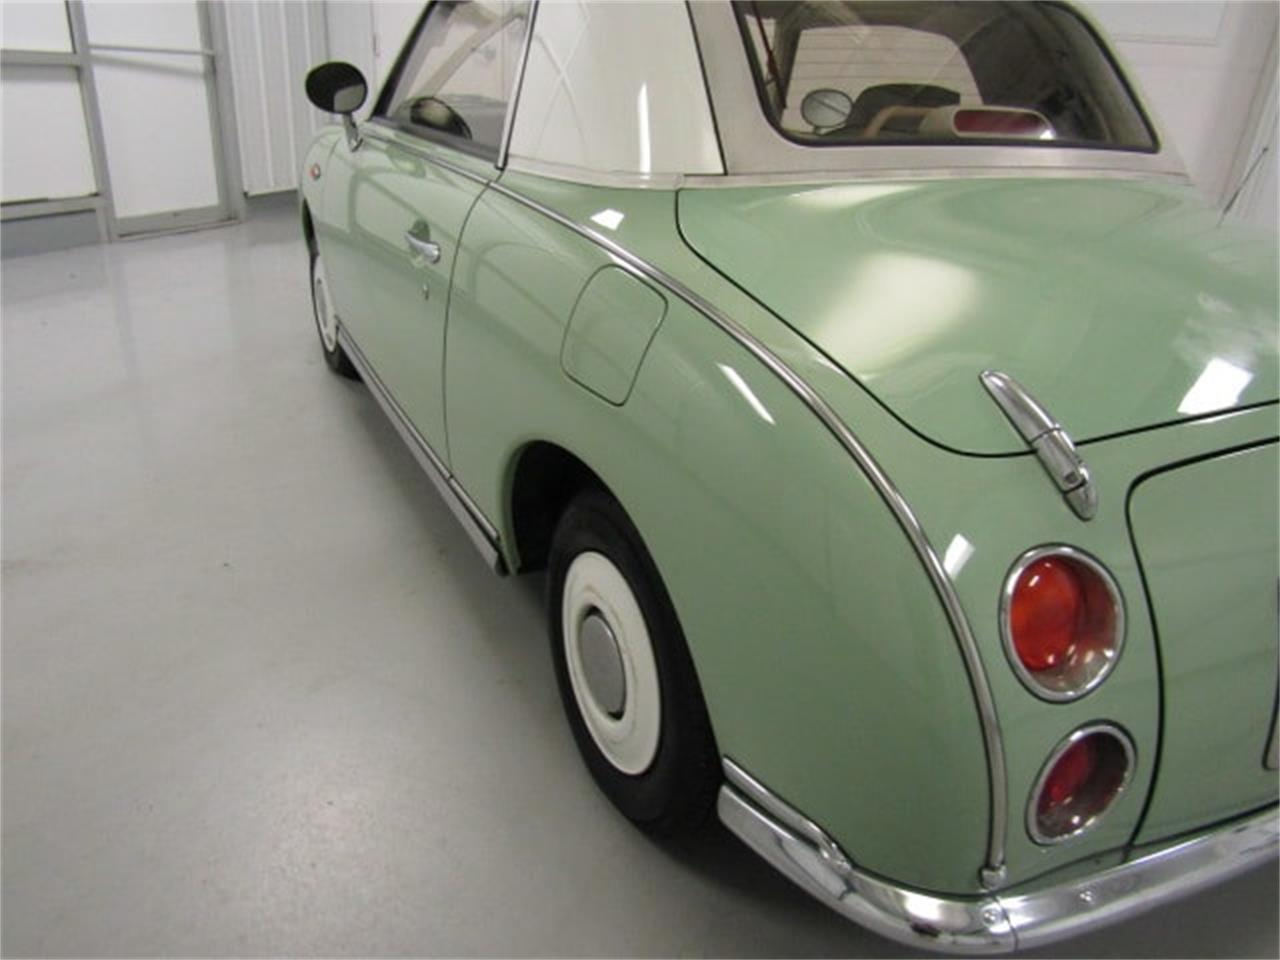 Large Picture of '91 Nissan Figaro located in Christiansburg Virginia - $9,993.00 Offered by Duncan Imports & Classic Cars - JL6C